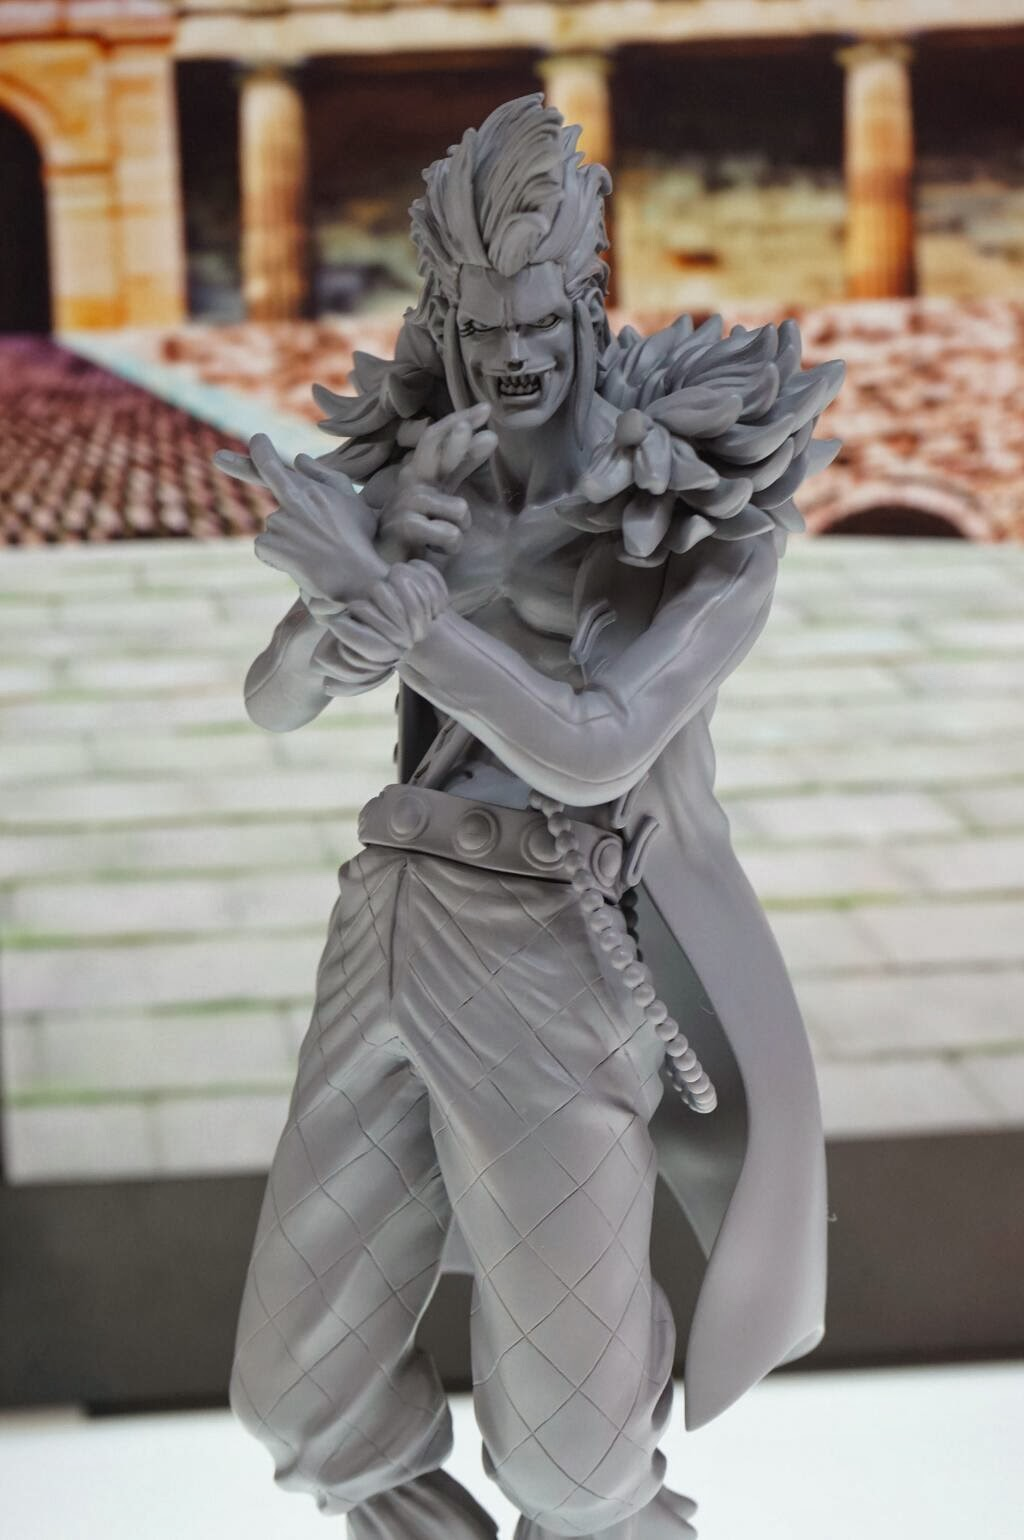 Wonder Festival 2014 Winter Wonder+Festival+2014+Winter+-+Sailing+Again+Bartolomeo